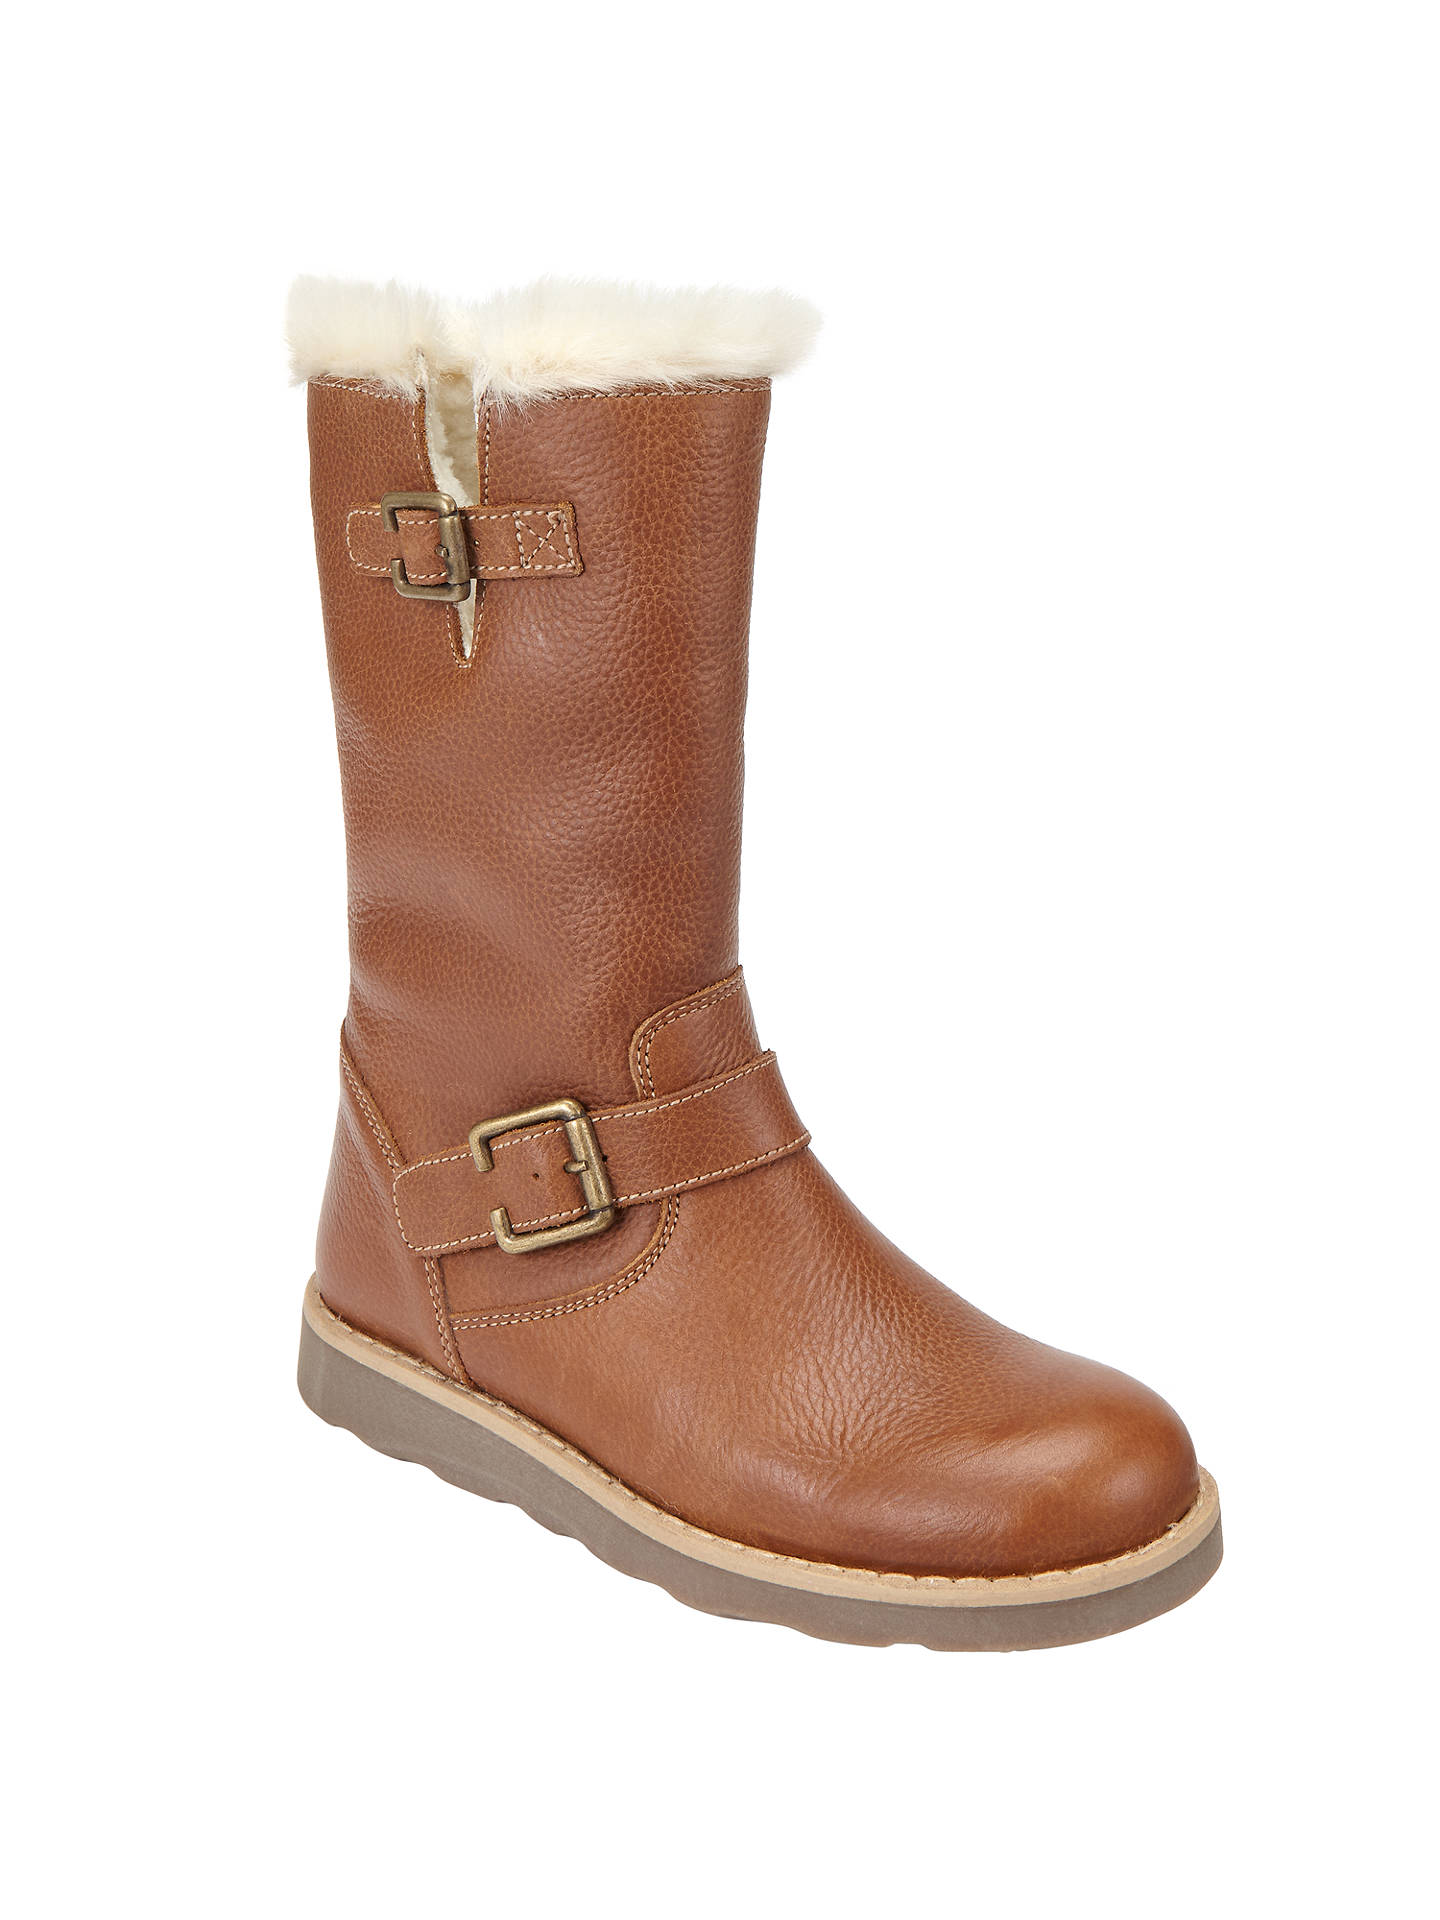 BuyJohn Lewis & Partners Children's Leia Shearling Boots, Tan Leather, 30 Online at johnlewis.com